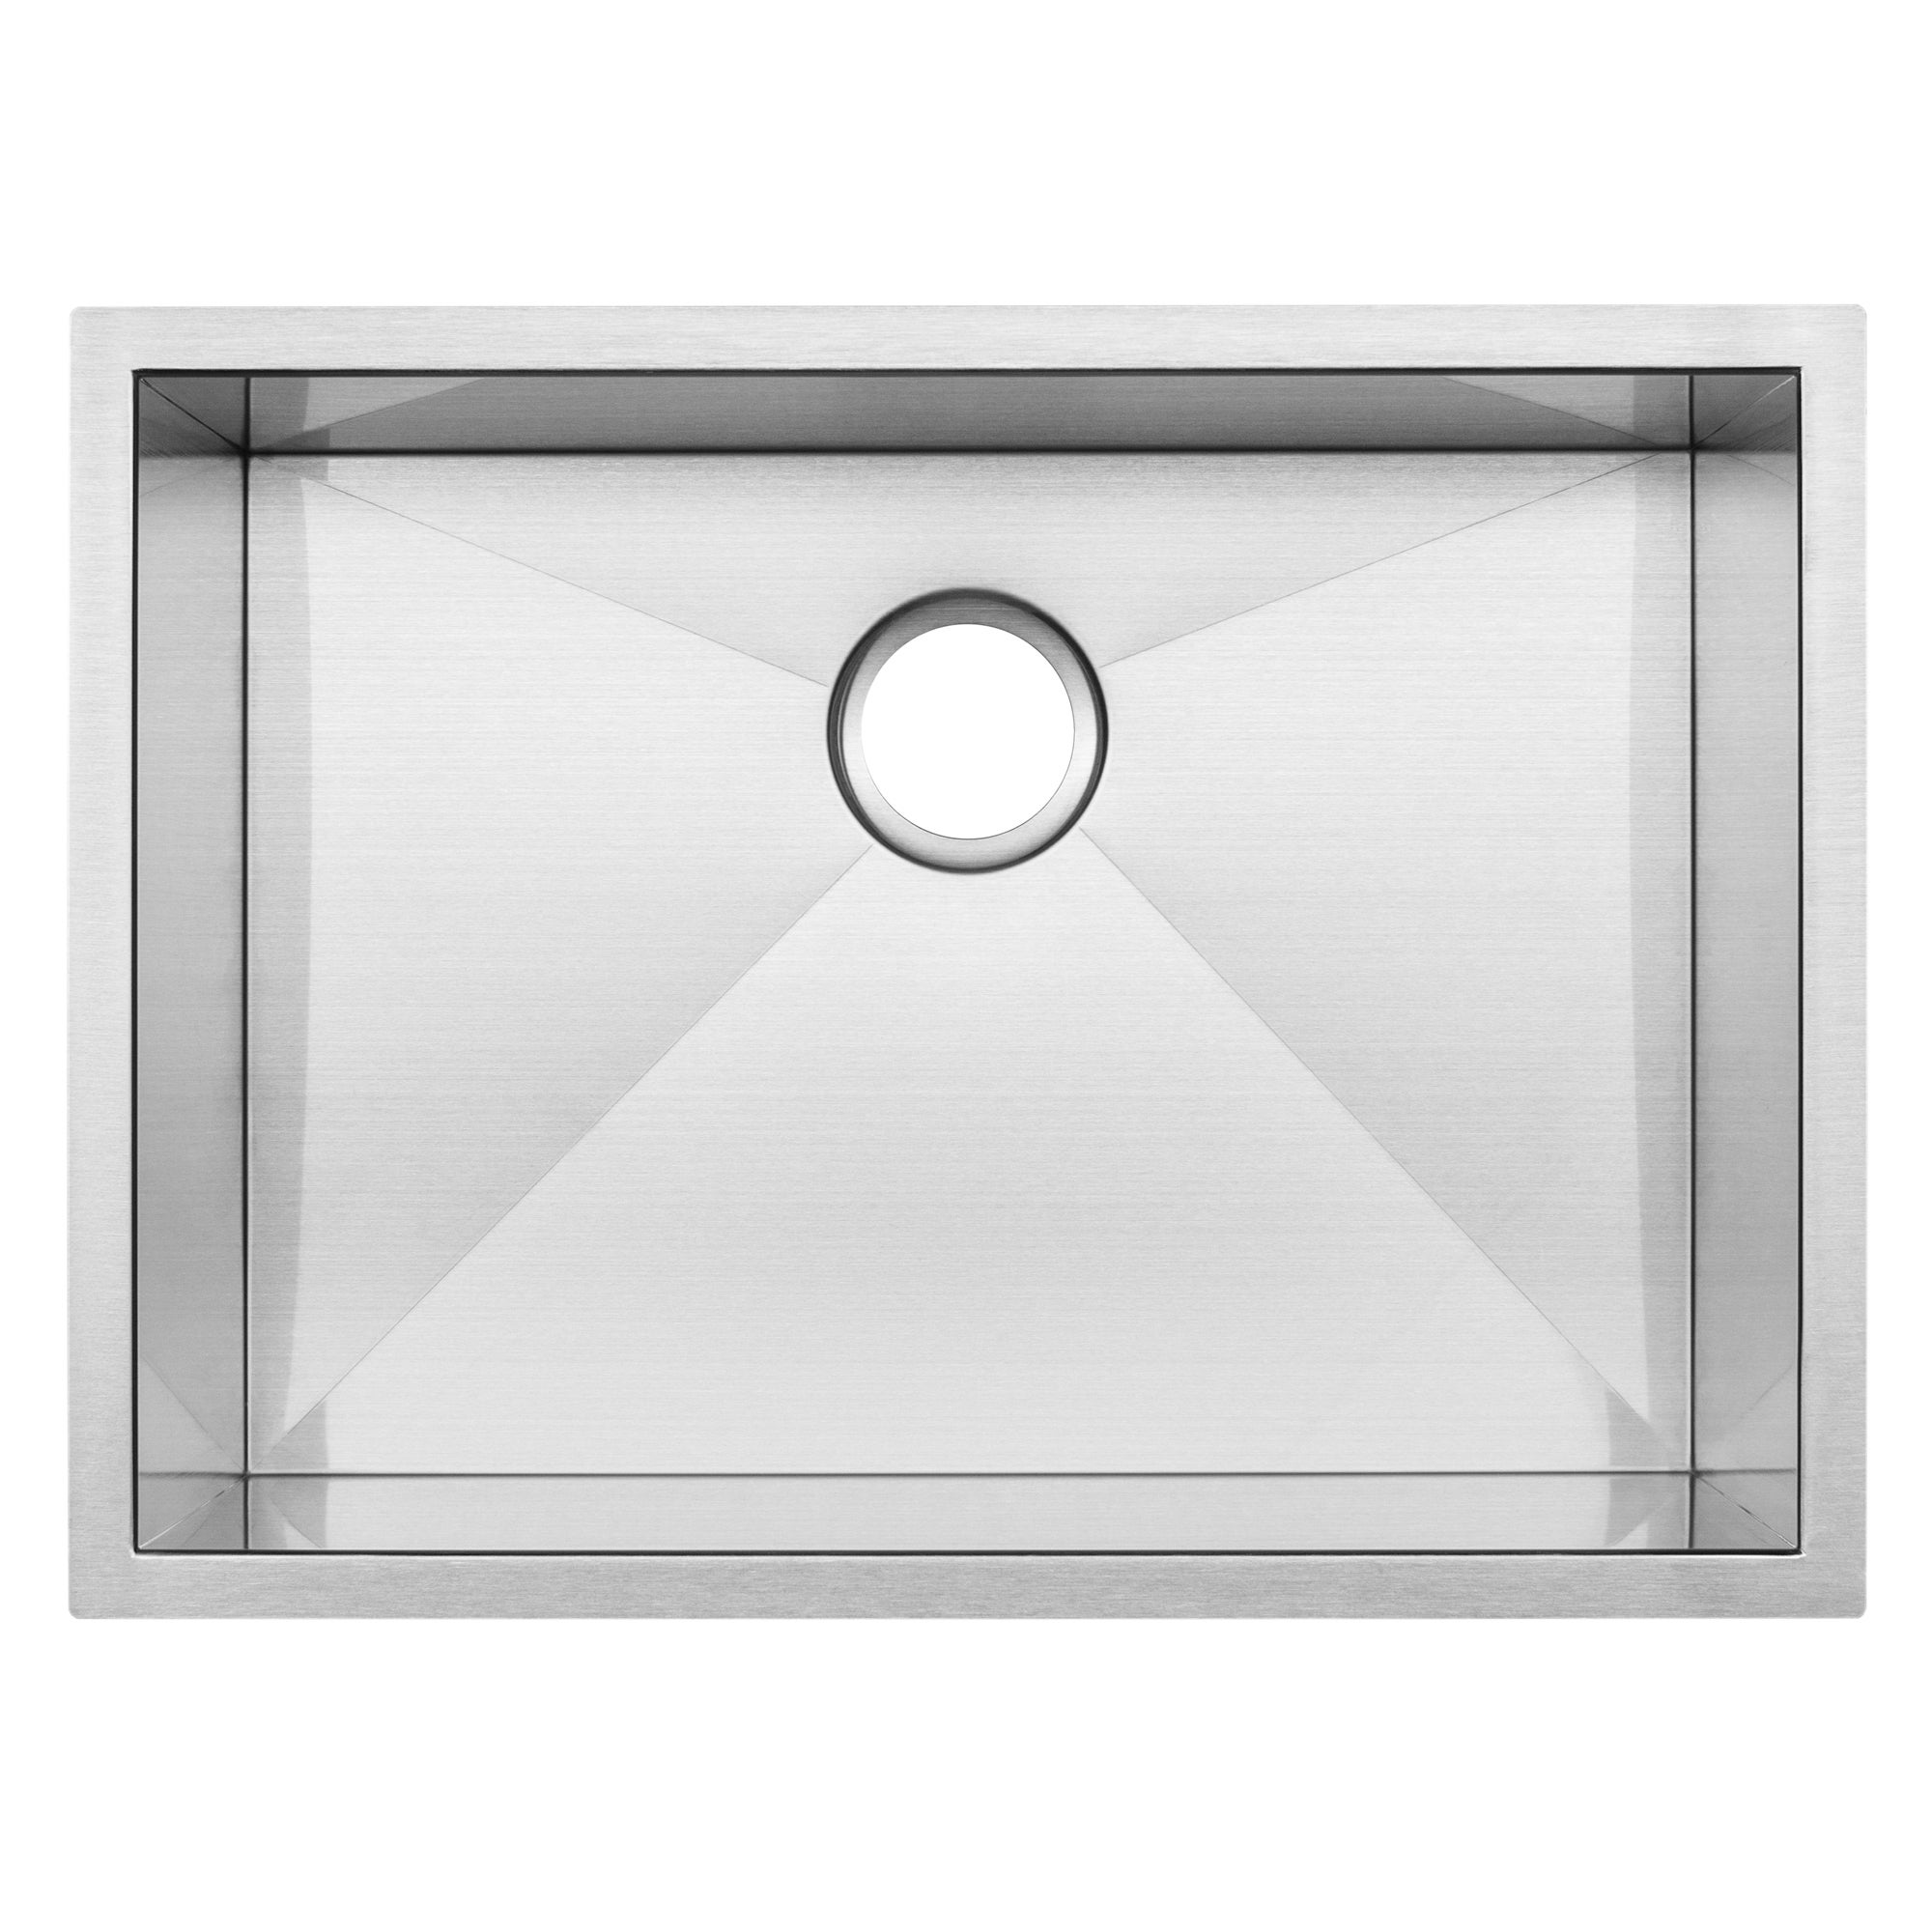 26   ticor s3670 stainless steel 16 gauge single bowl undermount square kitchen sink zero radius corners   free shipping today   overstock com   21321297 26   ticor s3670 stainless steel 16 gauge single bowl undermount      rh   overstock com